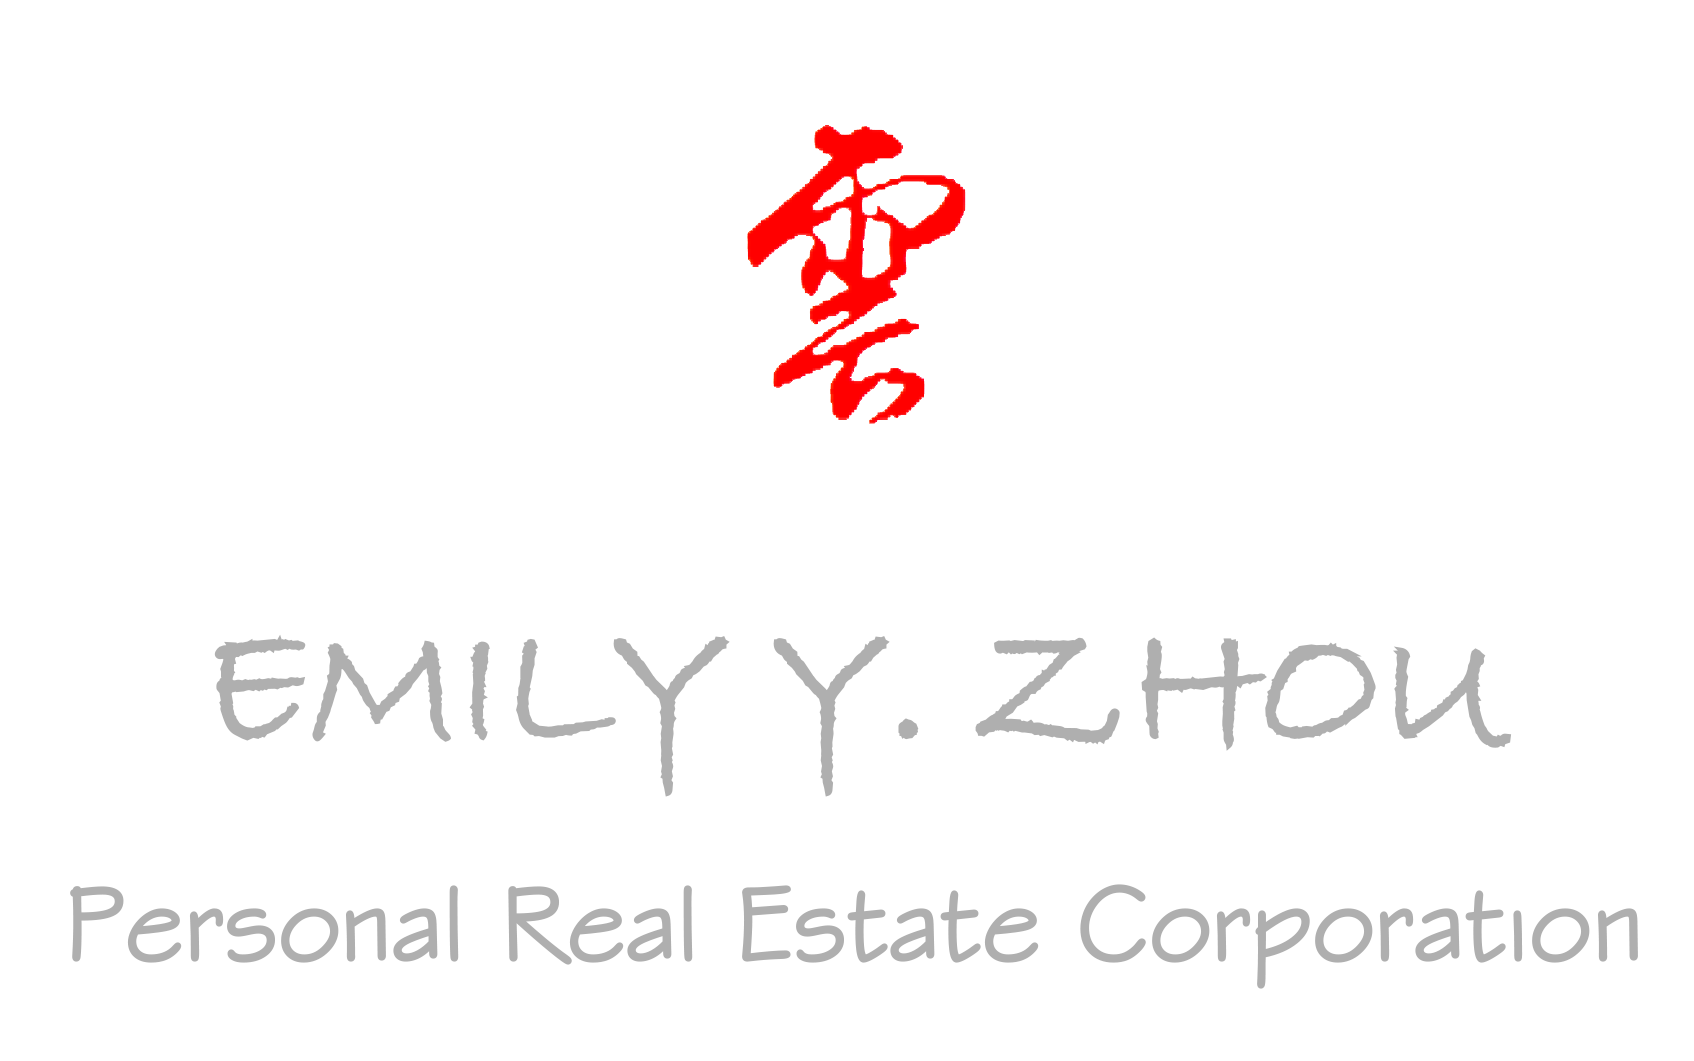 Emily Y. Zhou, Personal Real Estate Corporation